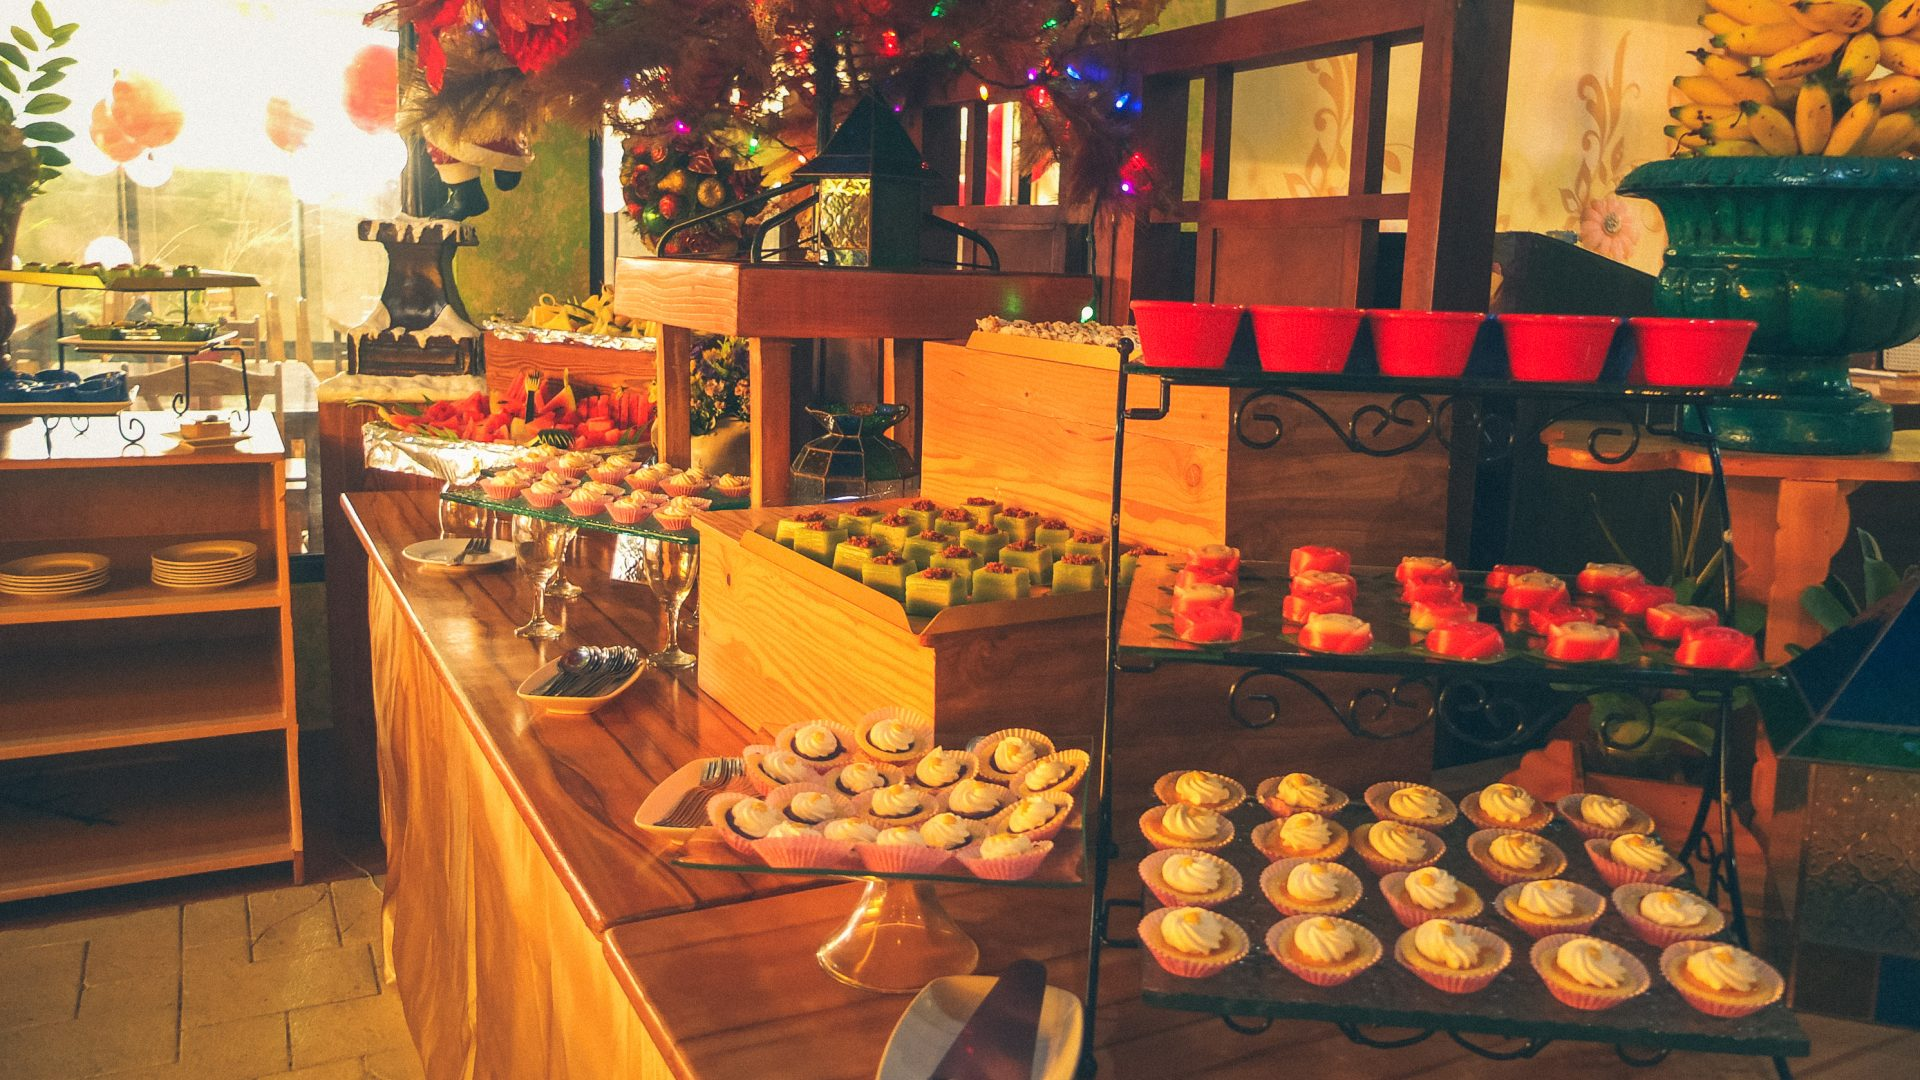 sunday-buffet-at-d-banquet-bakeshop-and-restaurant-for-only-p599